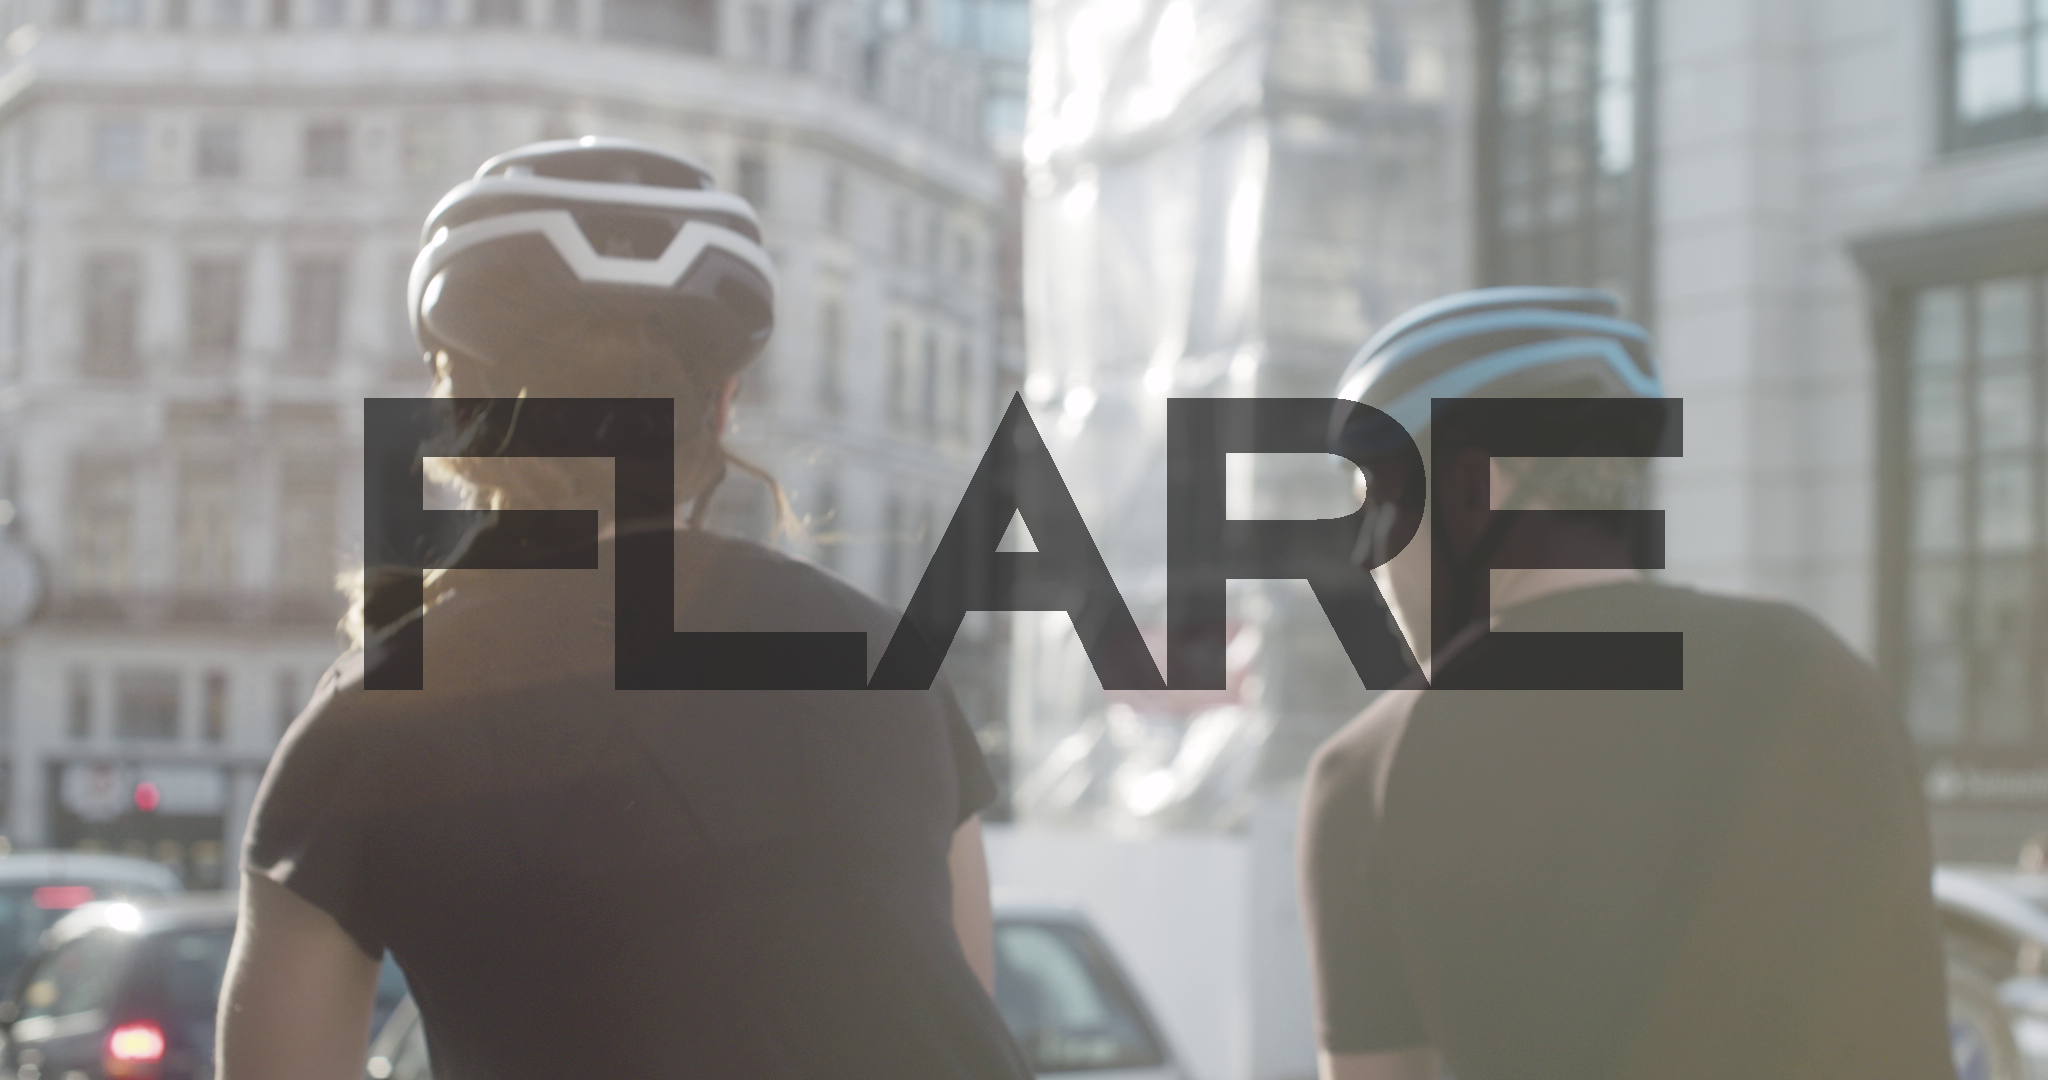 FLARE - UPGRADE YOUR RIDE - CAMPAIGN